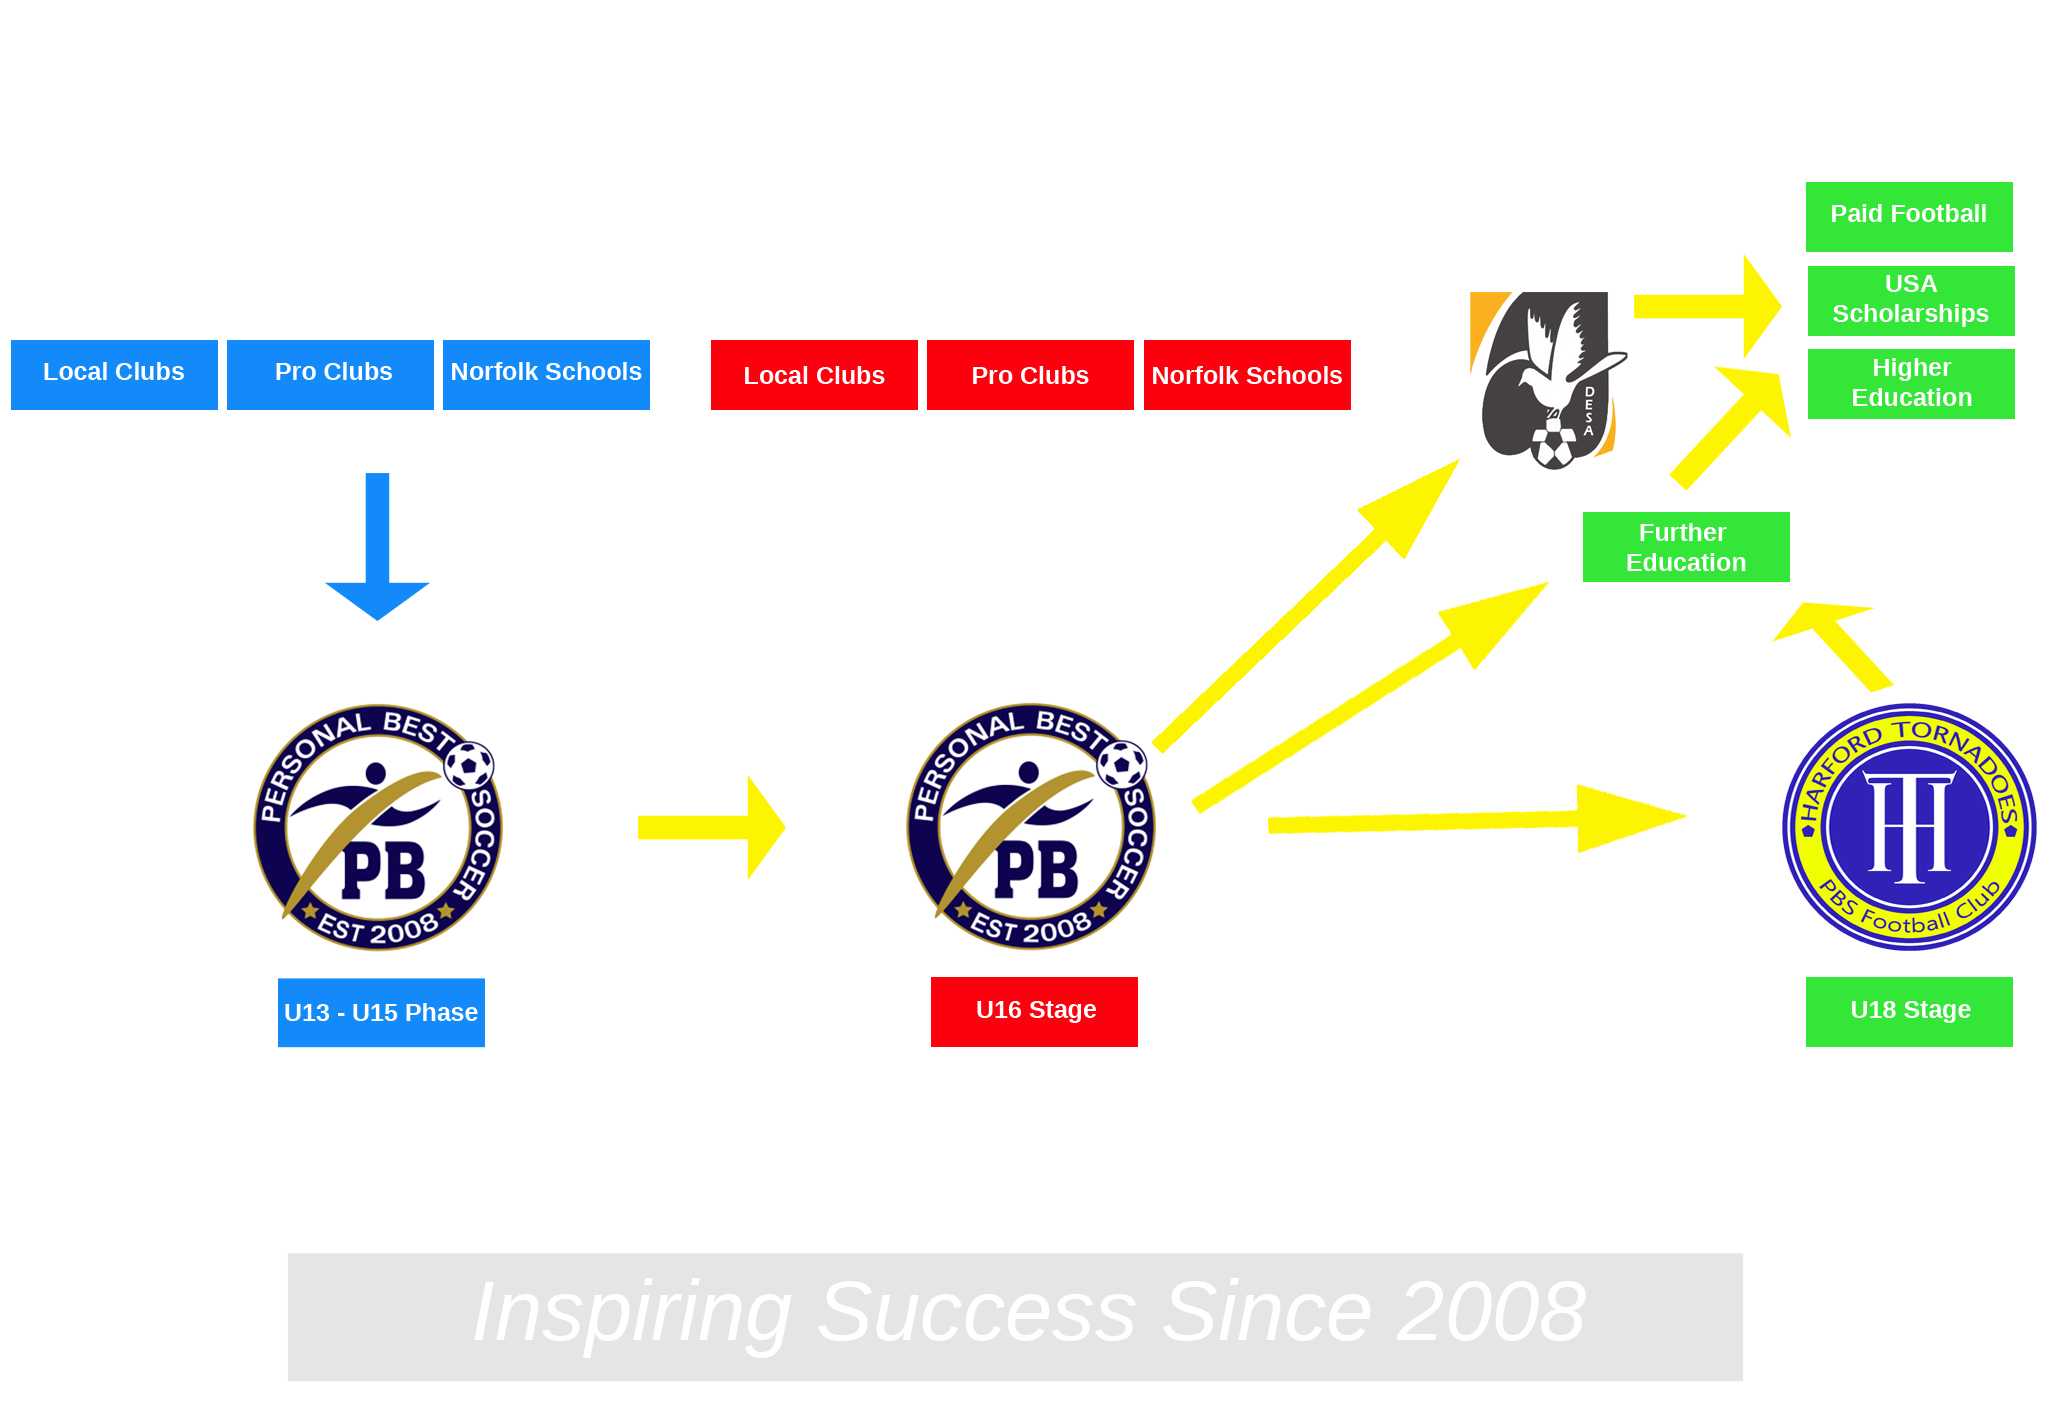 Personal Best Soccer Development Pathway